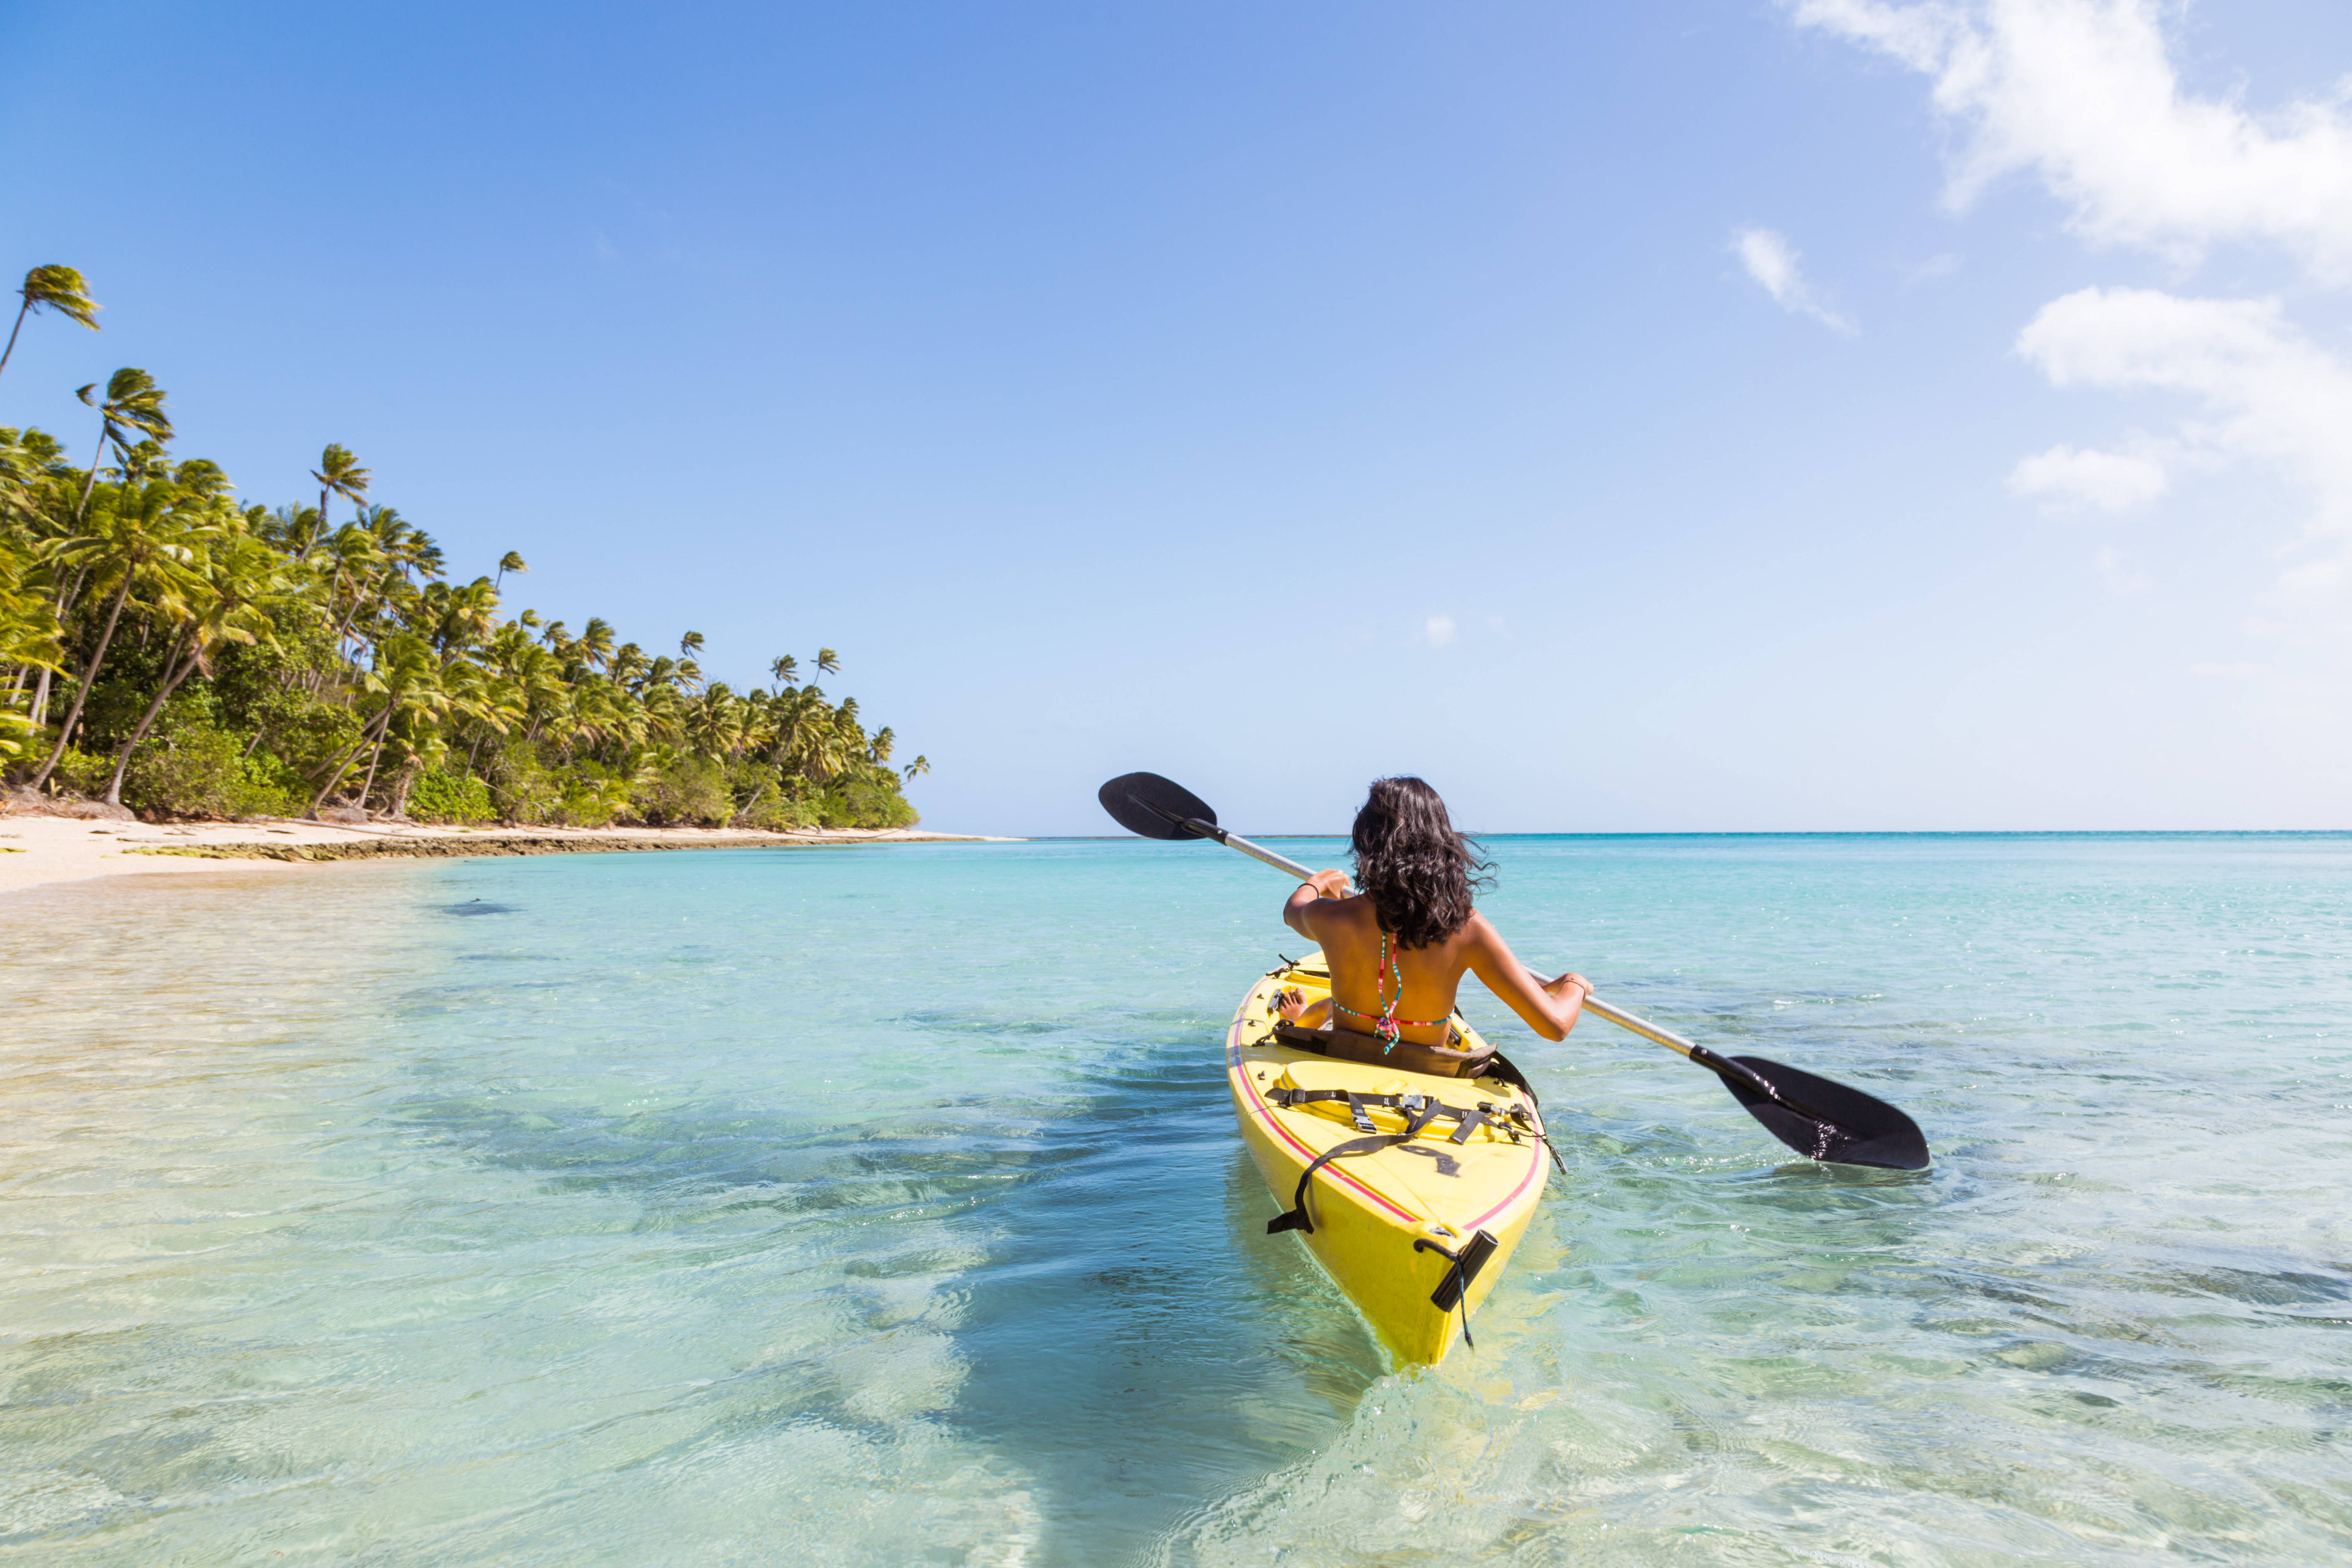 A woman navigates a yellow kayak close to shore at a tropical beach with cystal clear waters.